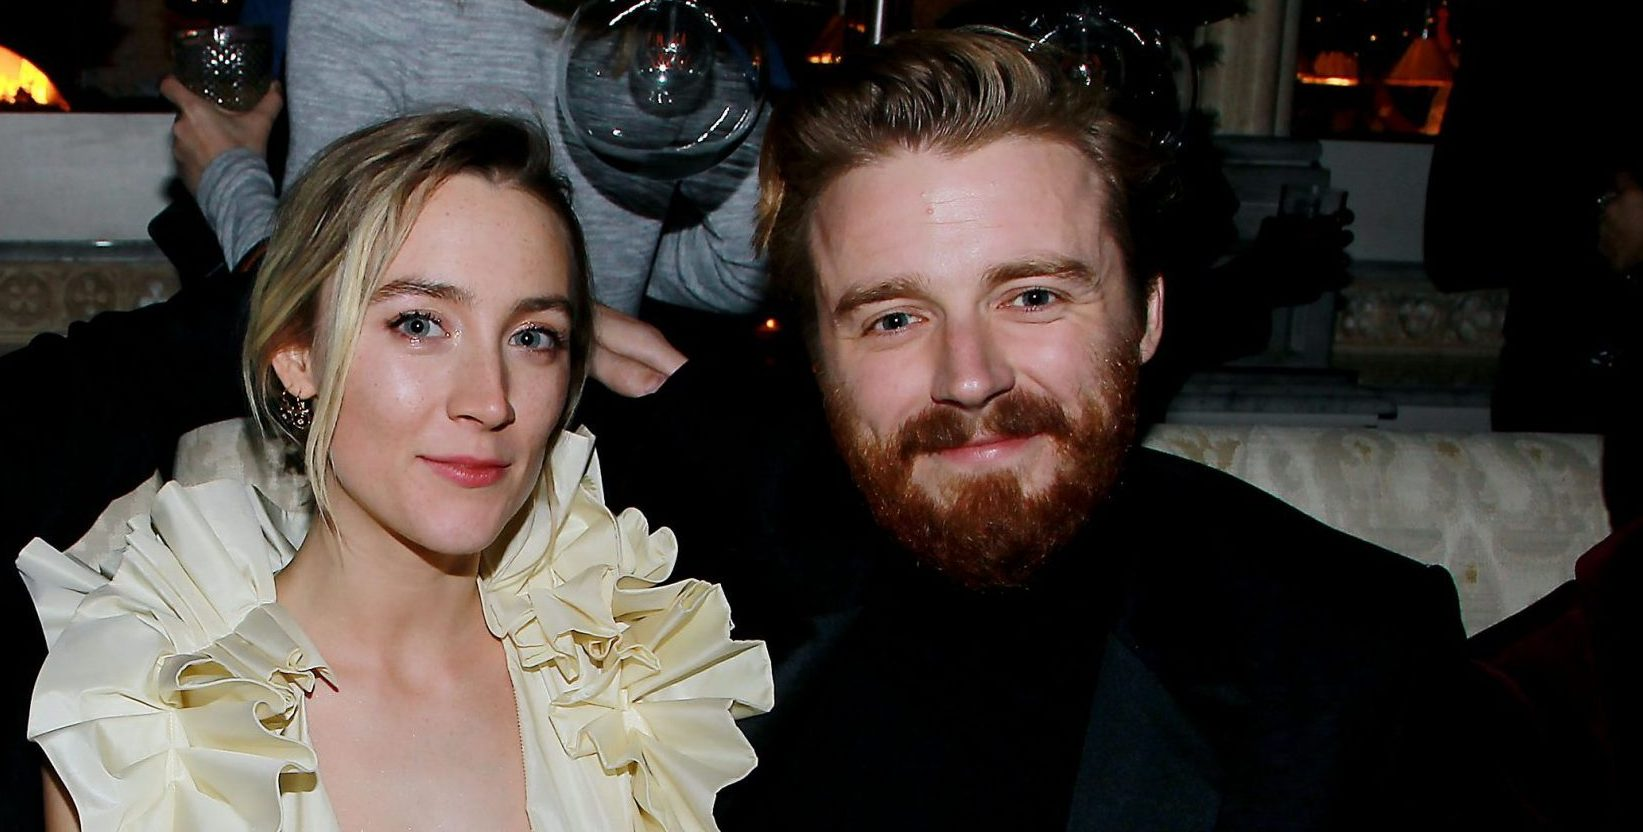 Saoirse Ronan and Jack Lowden 'looked after each other' during Mary Queen Of Scots sex scenes